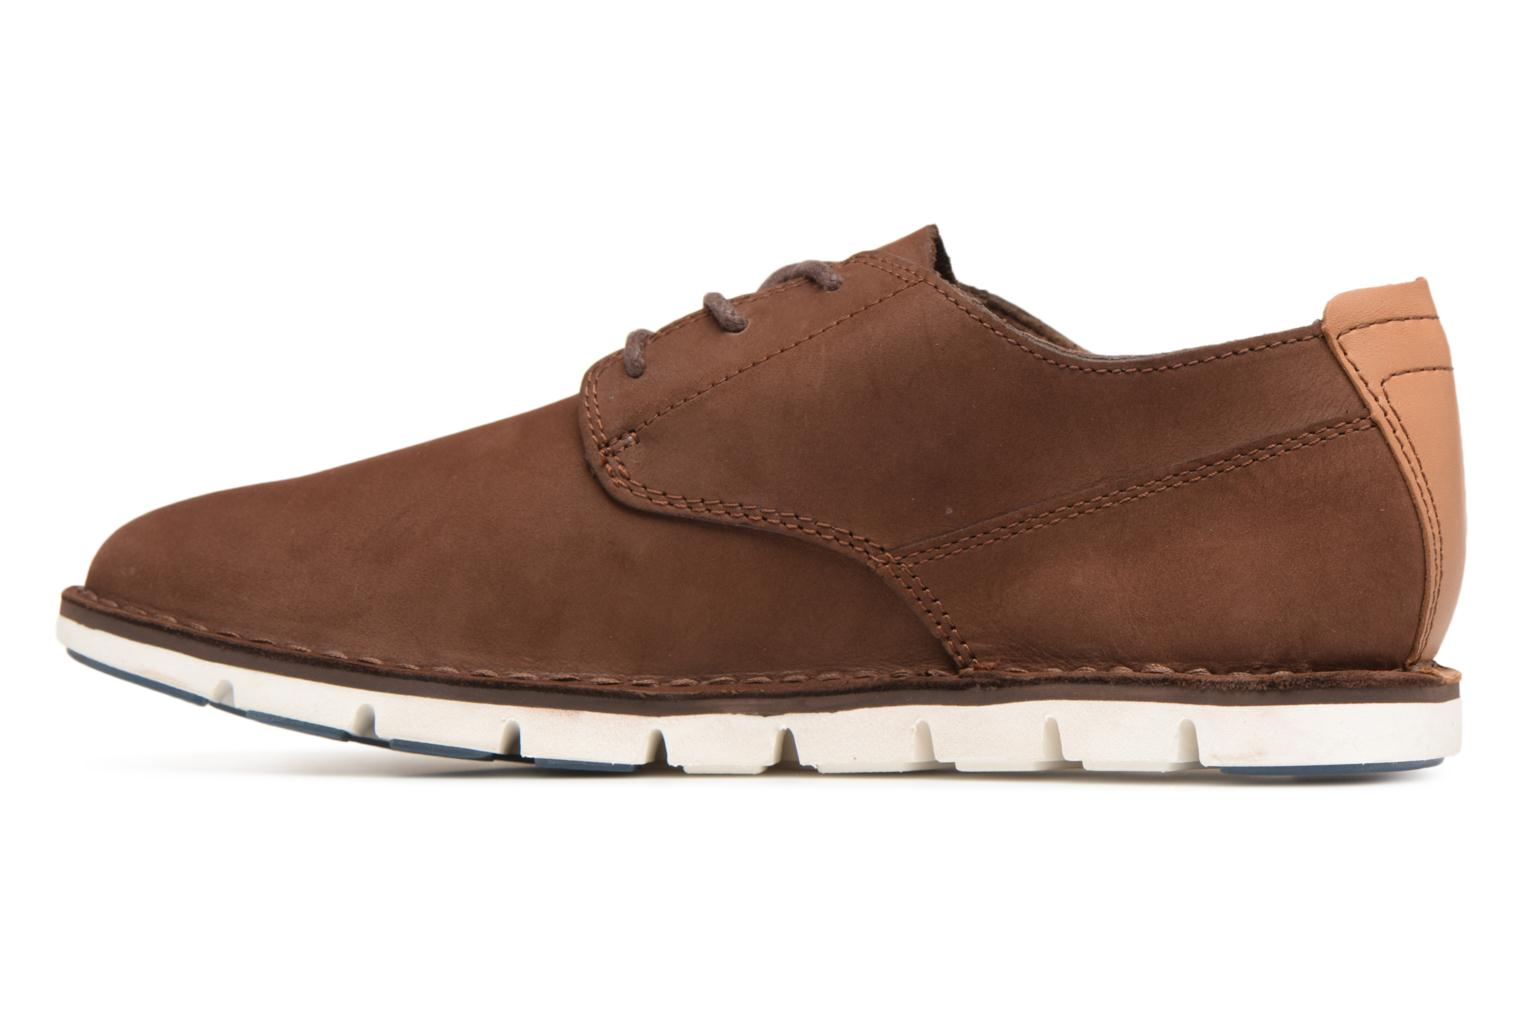 Chaussures à lacets Timberland Tidelands Oxford Marron vue face